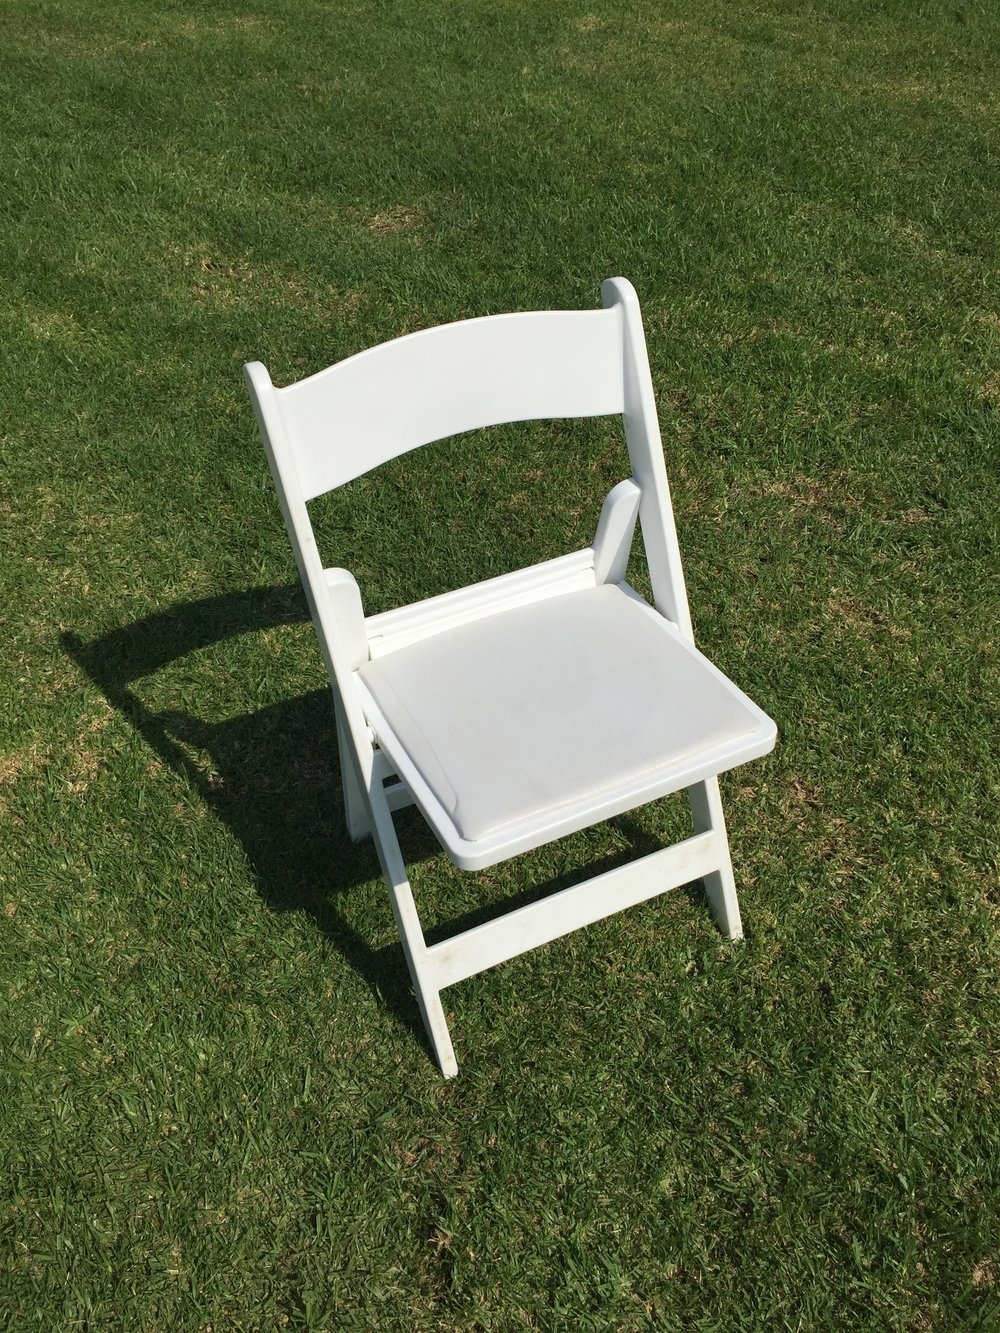 white-padded-resin-folding-chairs-1-300x225.jpg